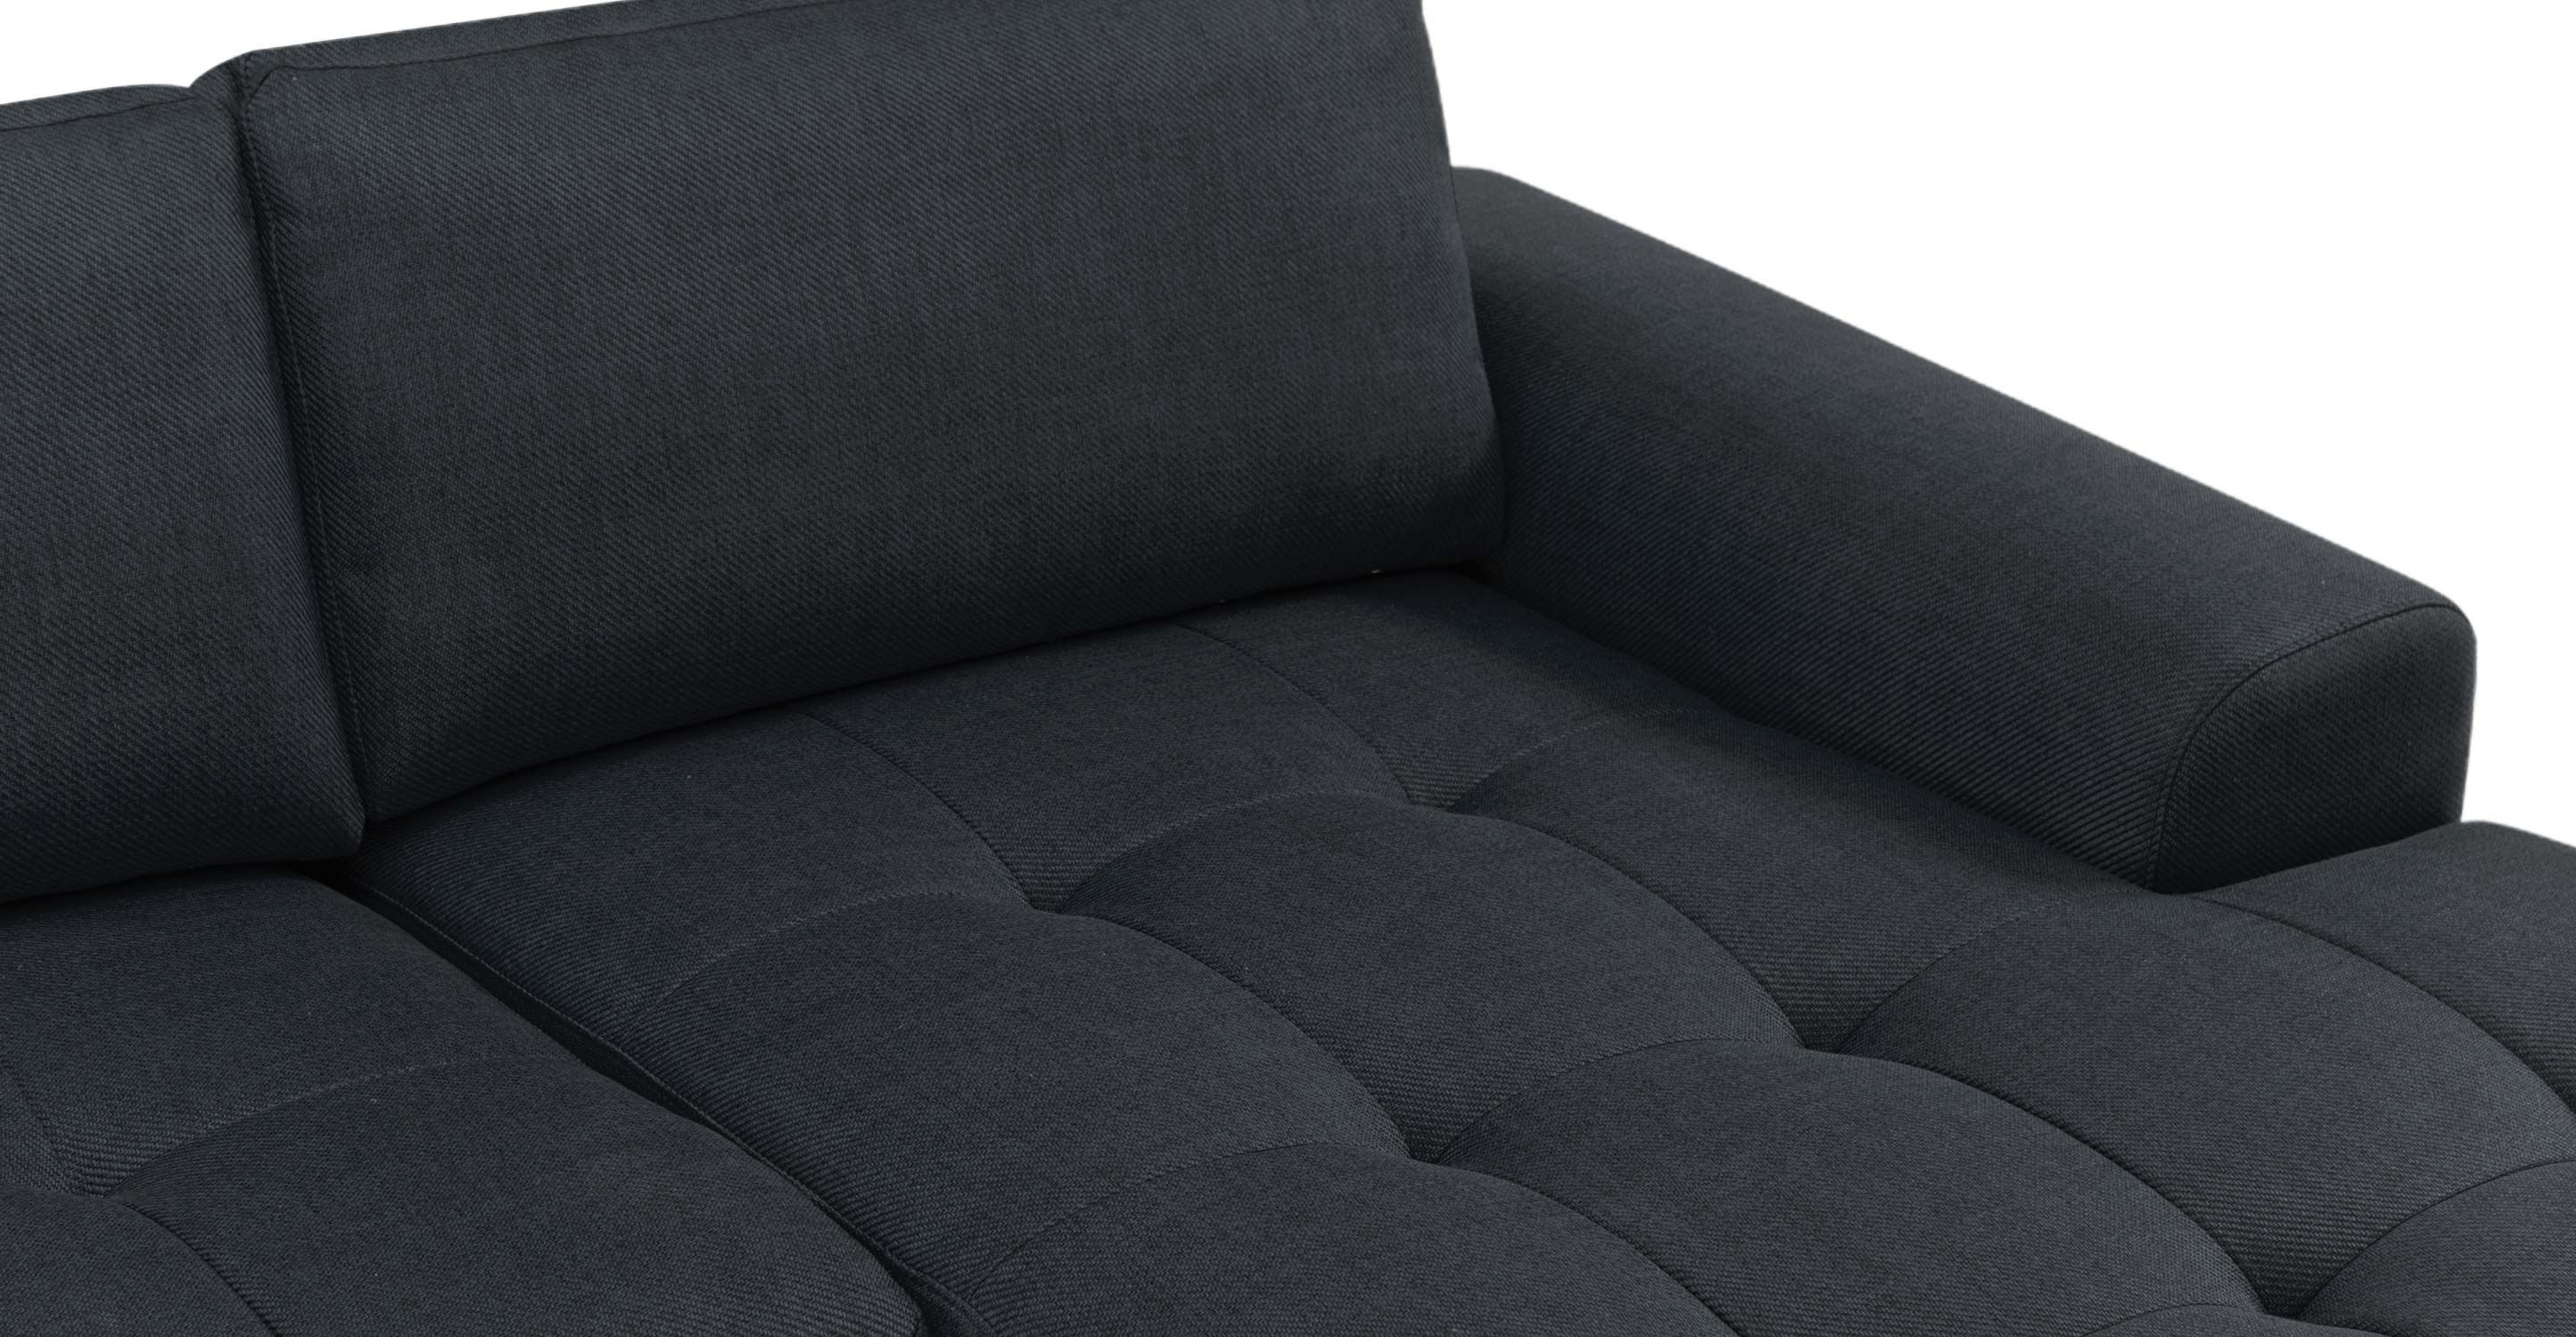 Vittorio Right Hand Facing Corner Sofa Group in anthracite grey | made.com